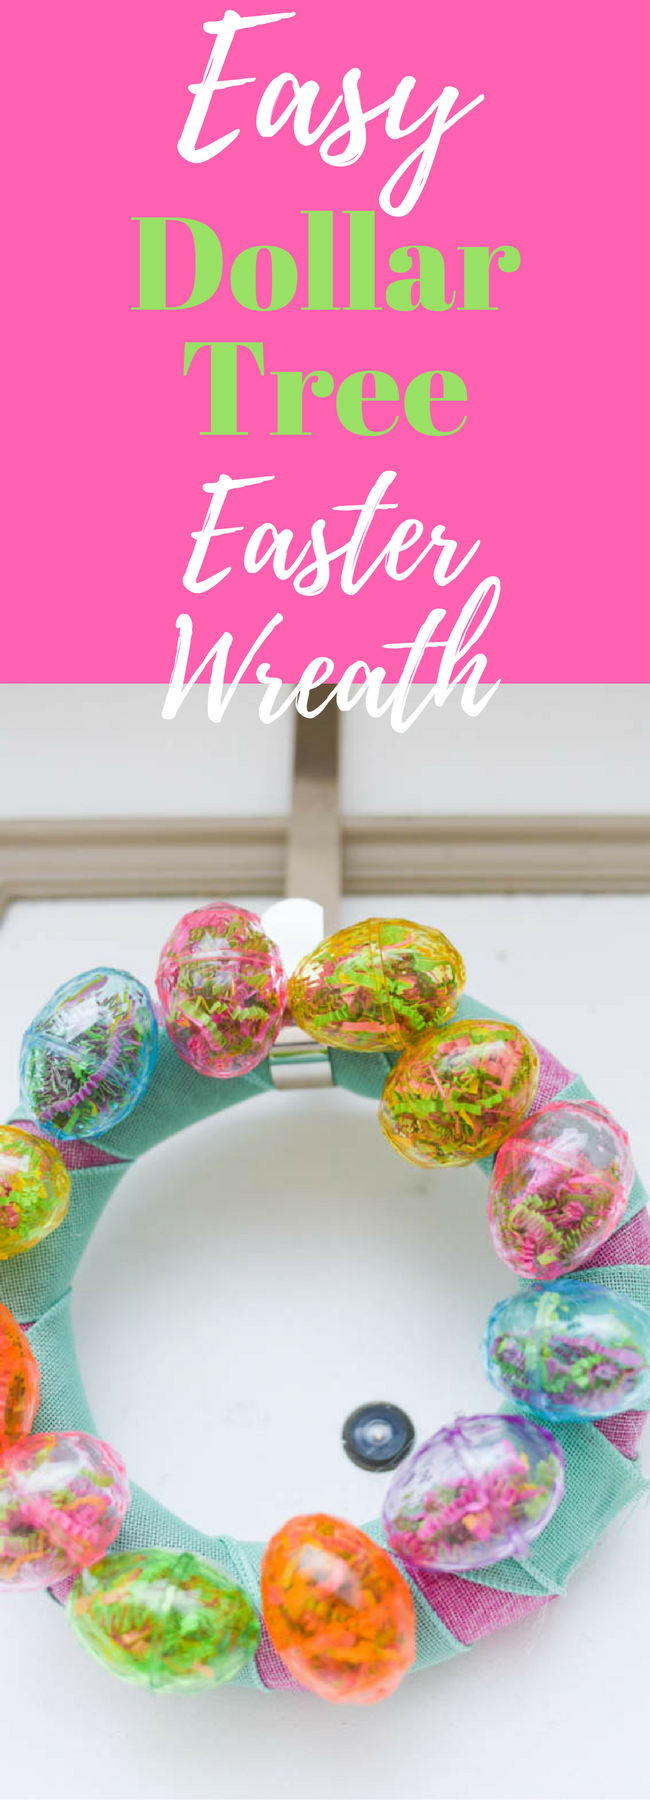 Dollar Tree Crafts / Dollar Store Crafts / Dollar Tree Wreath / Dollar Tree Easter Crafts / Dollar Tree Ideas / Easter Crafts / Easy Easter Crafts / Easter Wreath / Easter Decorations / Super Saturday /